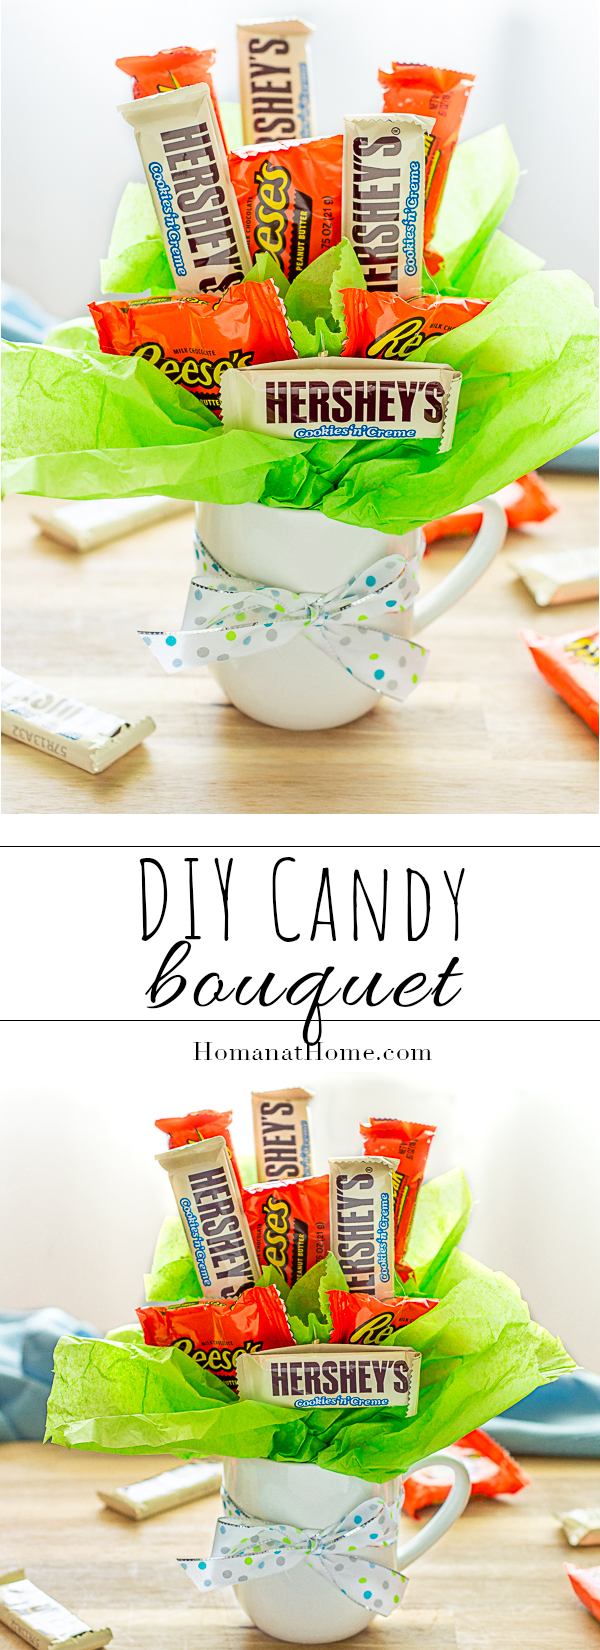 DIY Candy Bouquet | Homan at Home